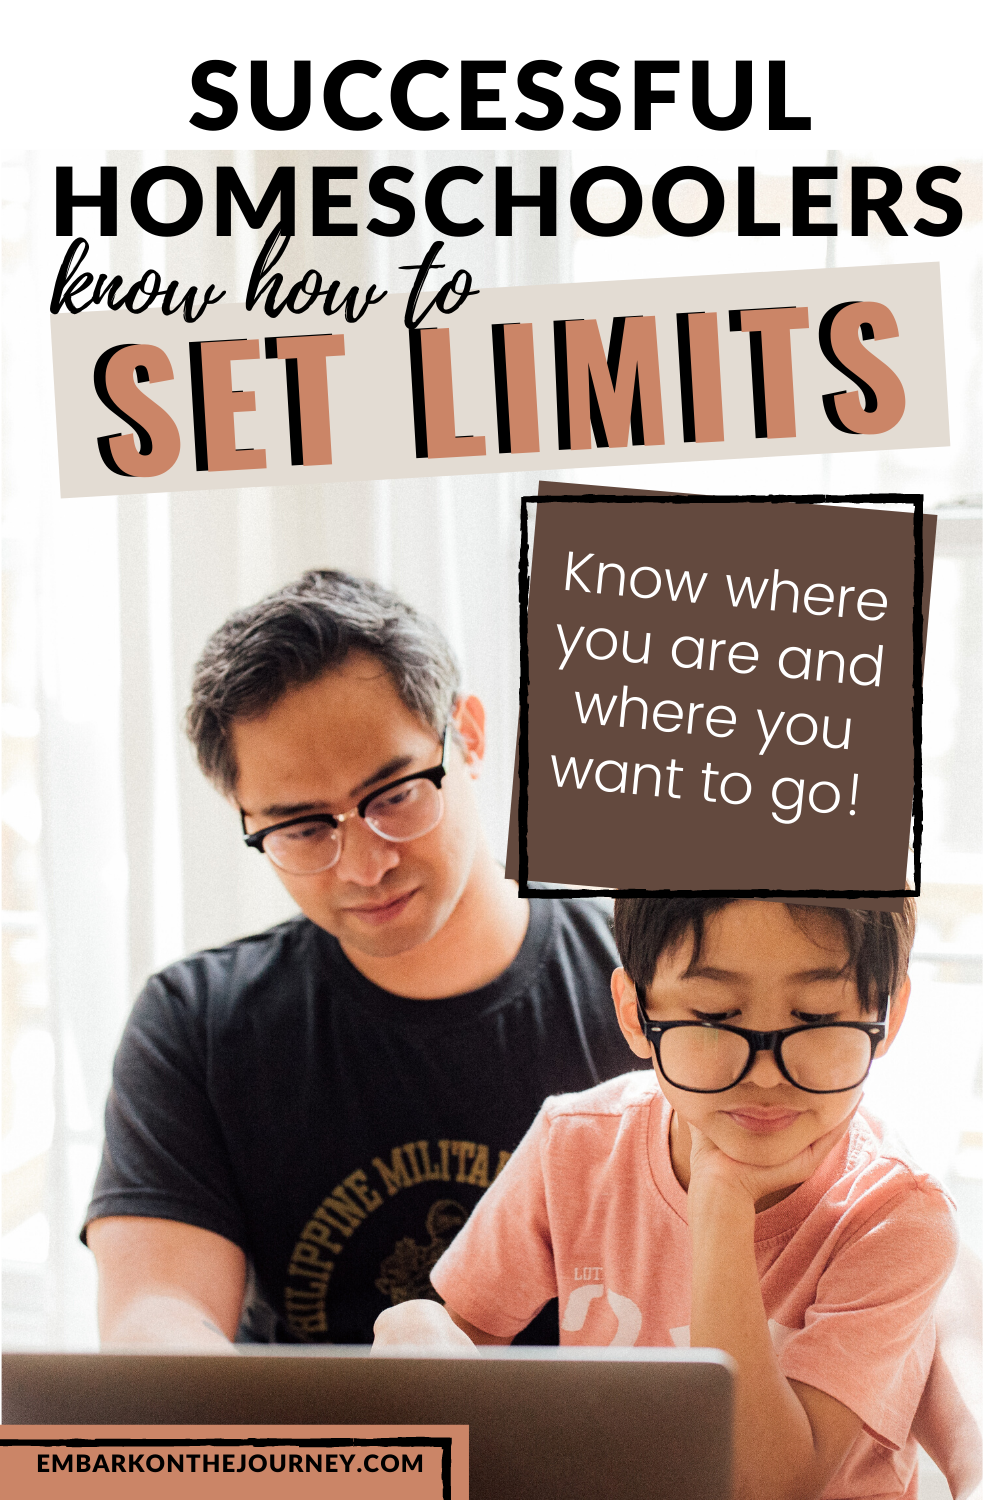 No two homeschools look alike. Everyone's needs are different, and when a homeschool mom knows her limits, she can set herself up for a successful year!